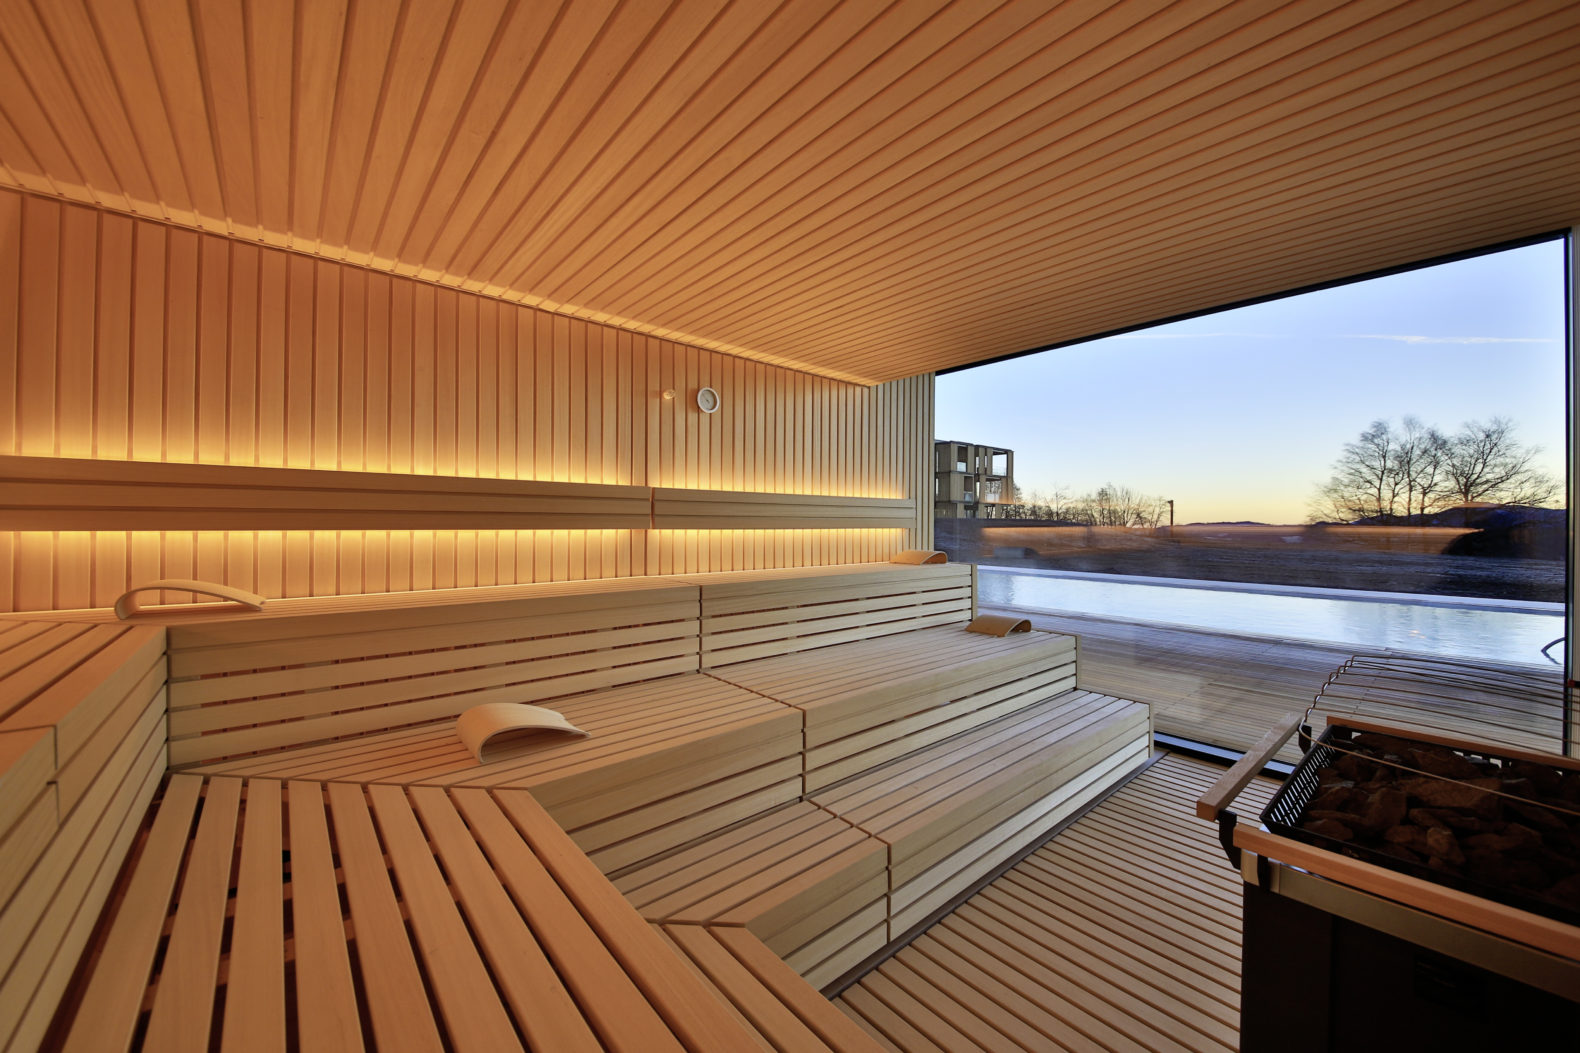 modern-wood-spacious-sauna-nature-view-windosws-sunset-goldenhour-light-lanserhof-tegernsee-germany